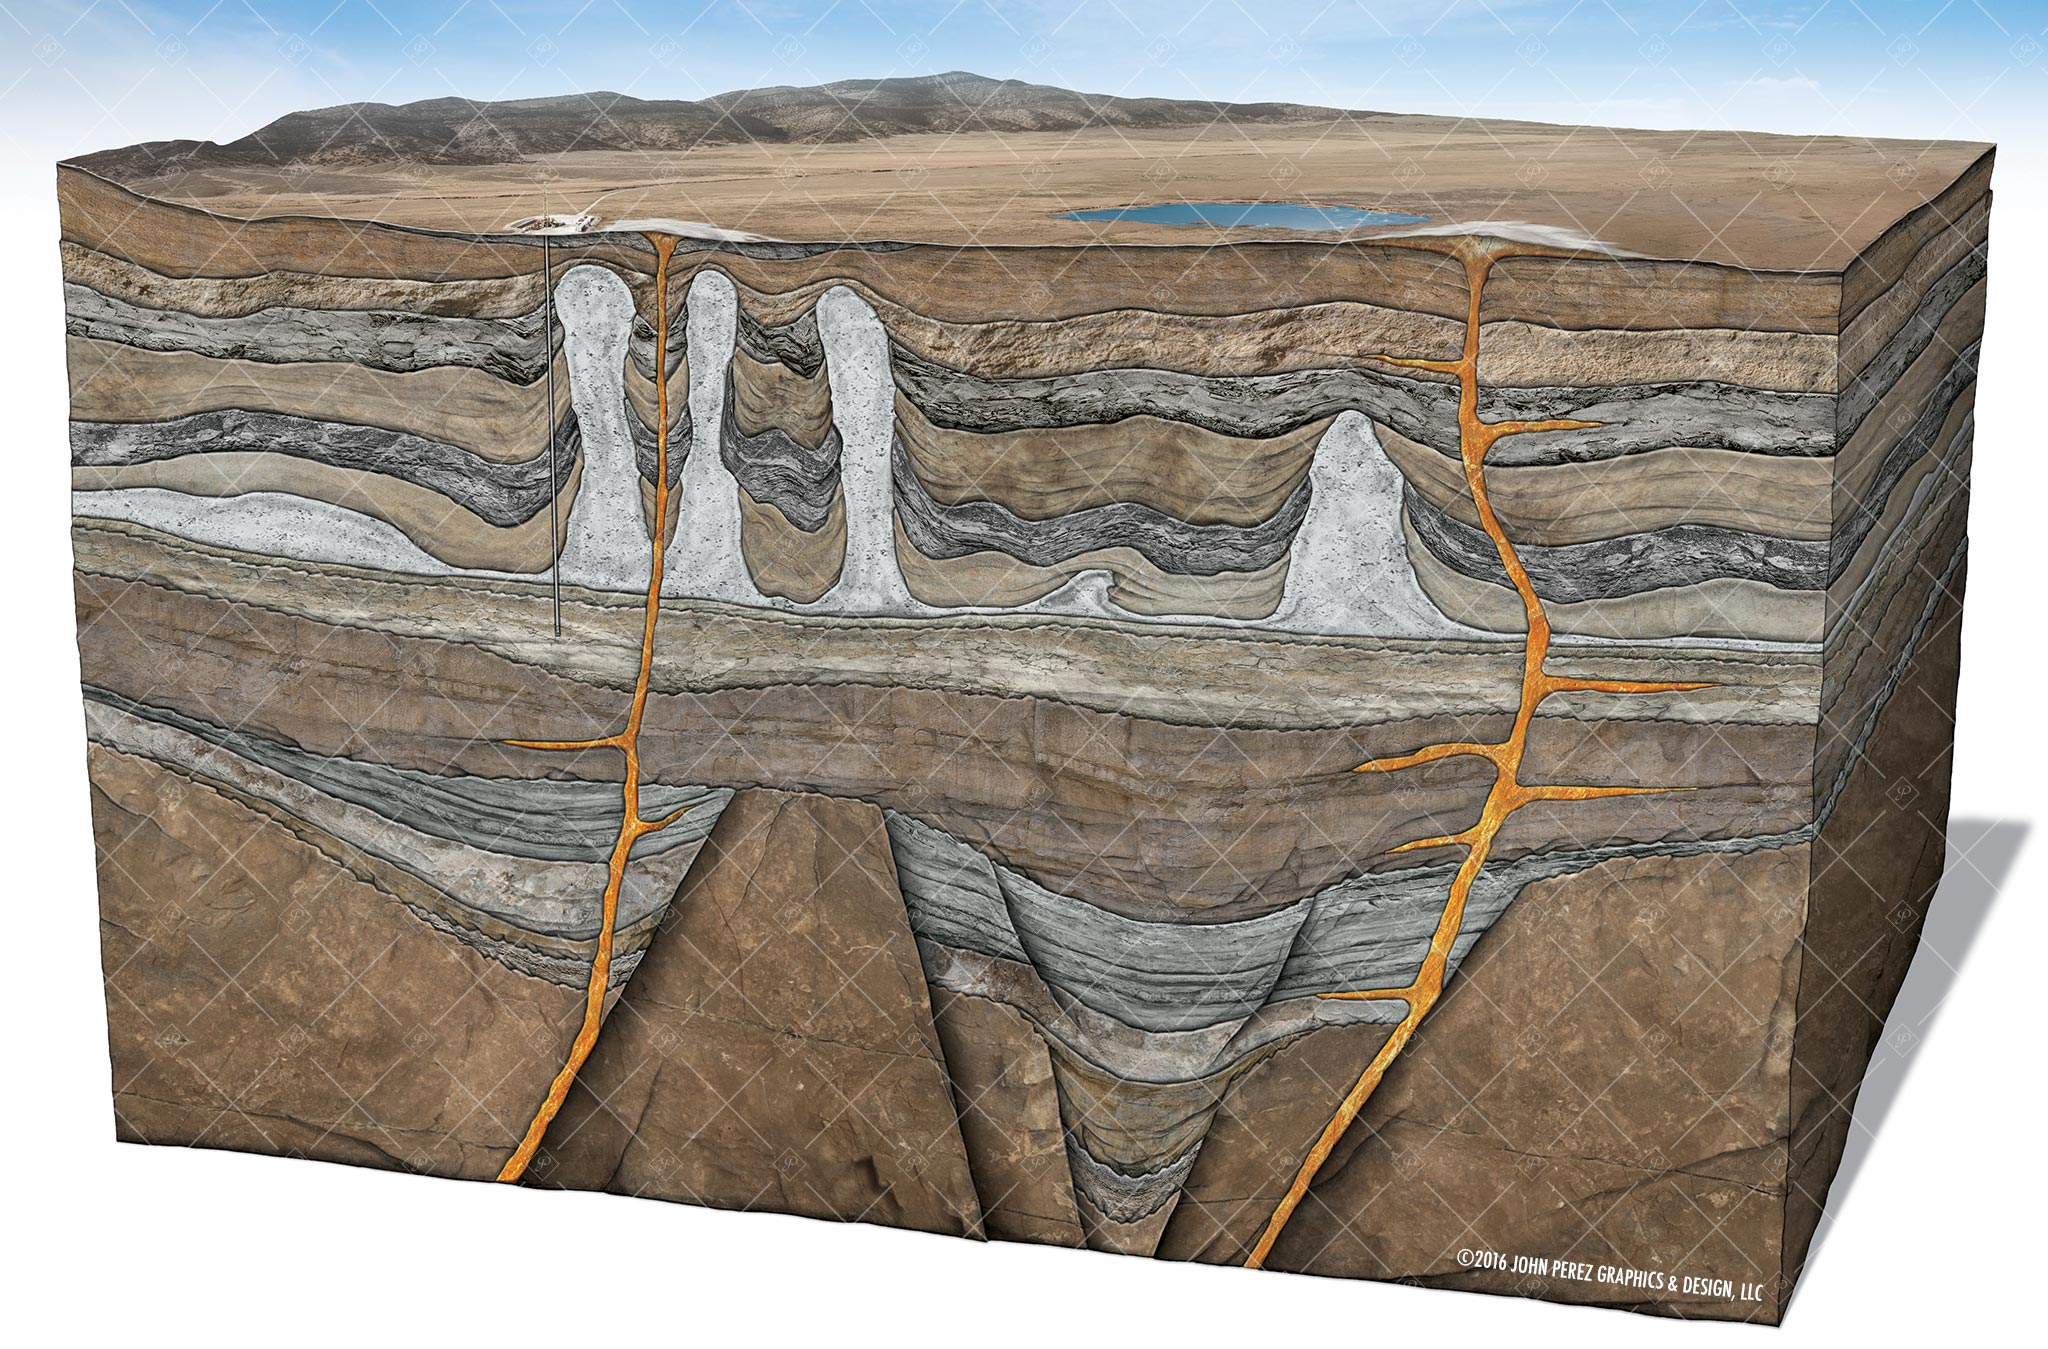 White Salt Dome Schematic Illustration, drilling geology, oil and gas graphics, oil and gas schematics, john perez graphics, geology illustration